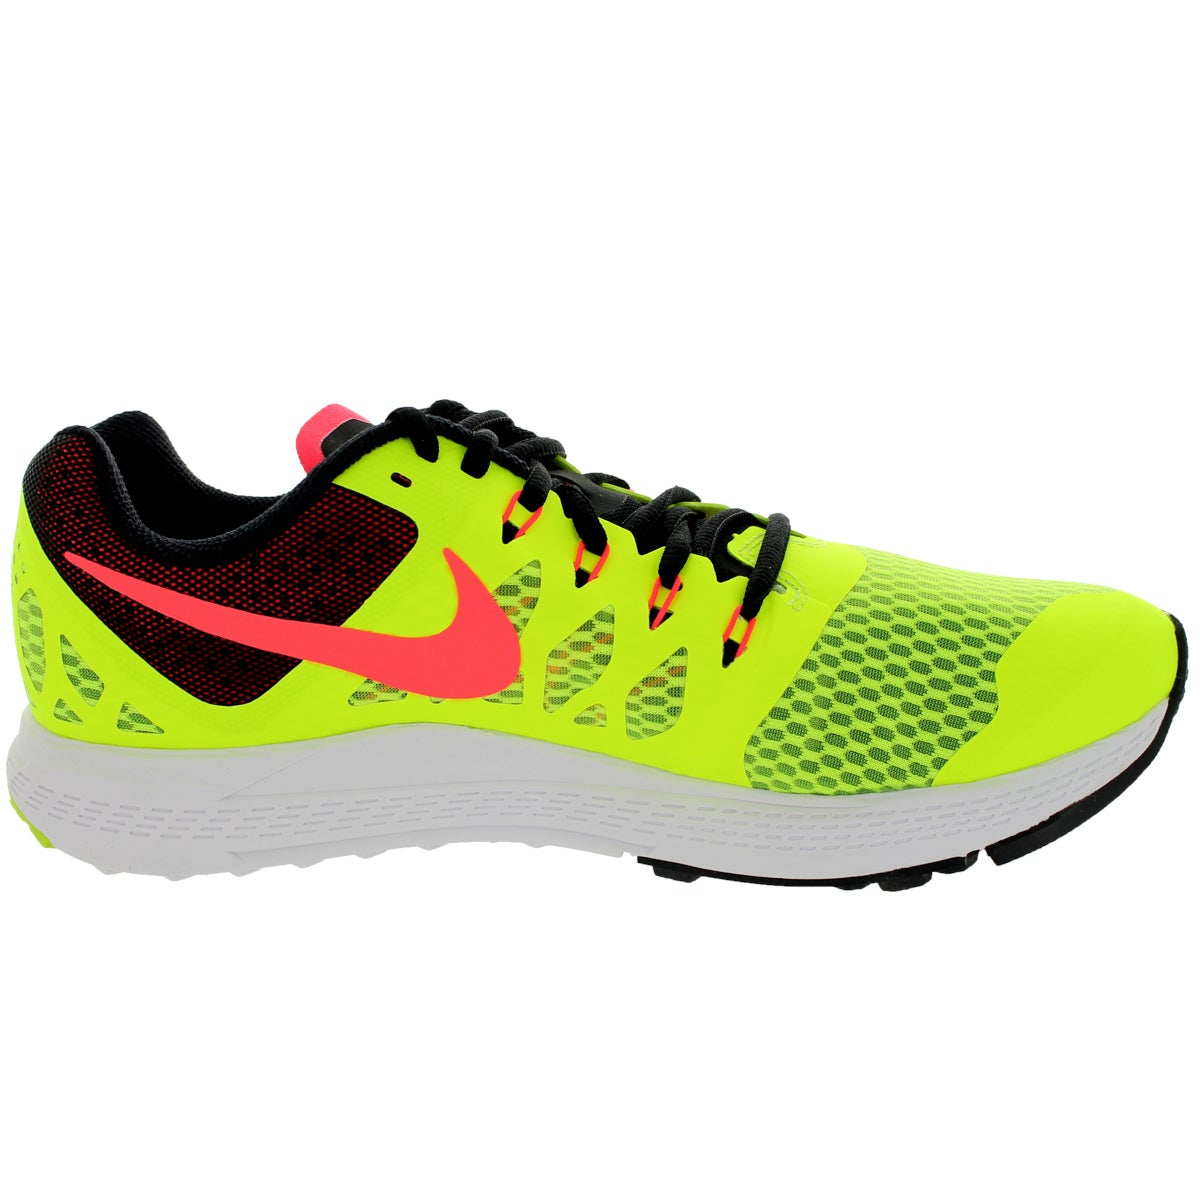 4f614385c340a Shop Nike Men s Zoom Elite 7 Volt Hyper Punch Black Running Shoe - Free  Shipping Today - Overstock - 12321329